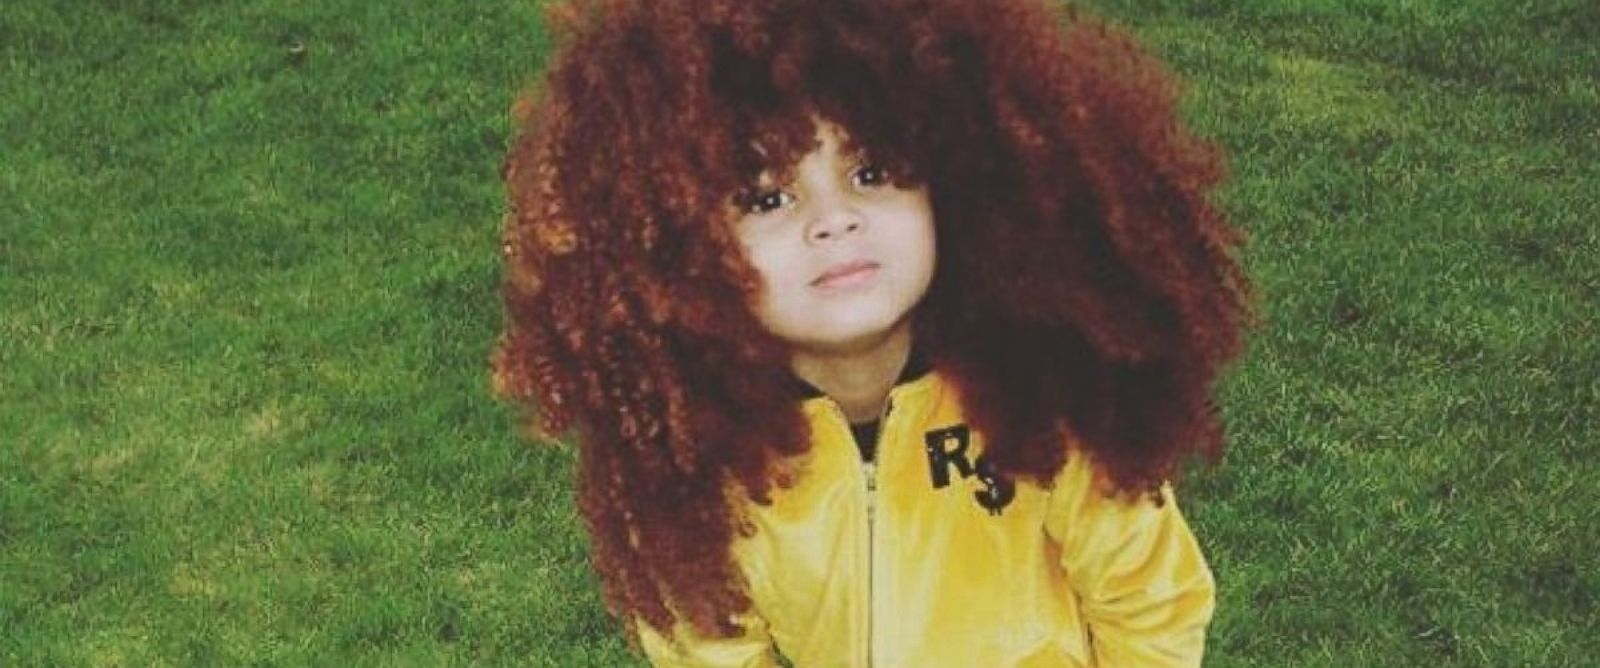 Pics For Gt Little Boys With Long Curly Hair